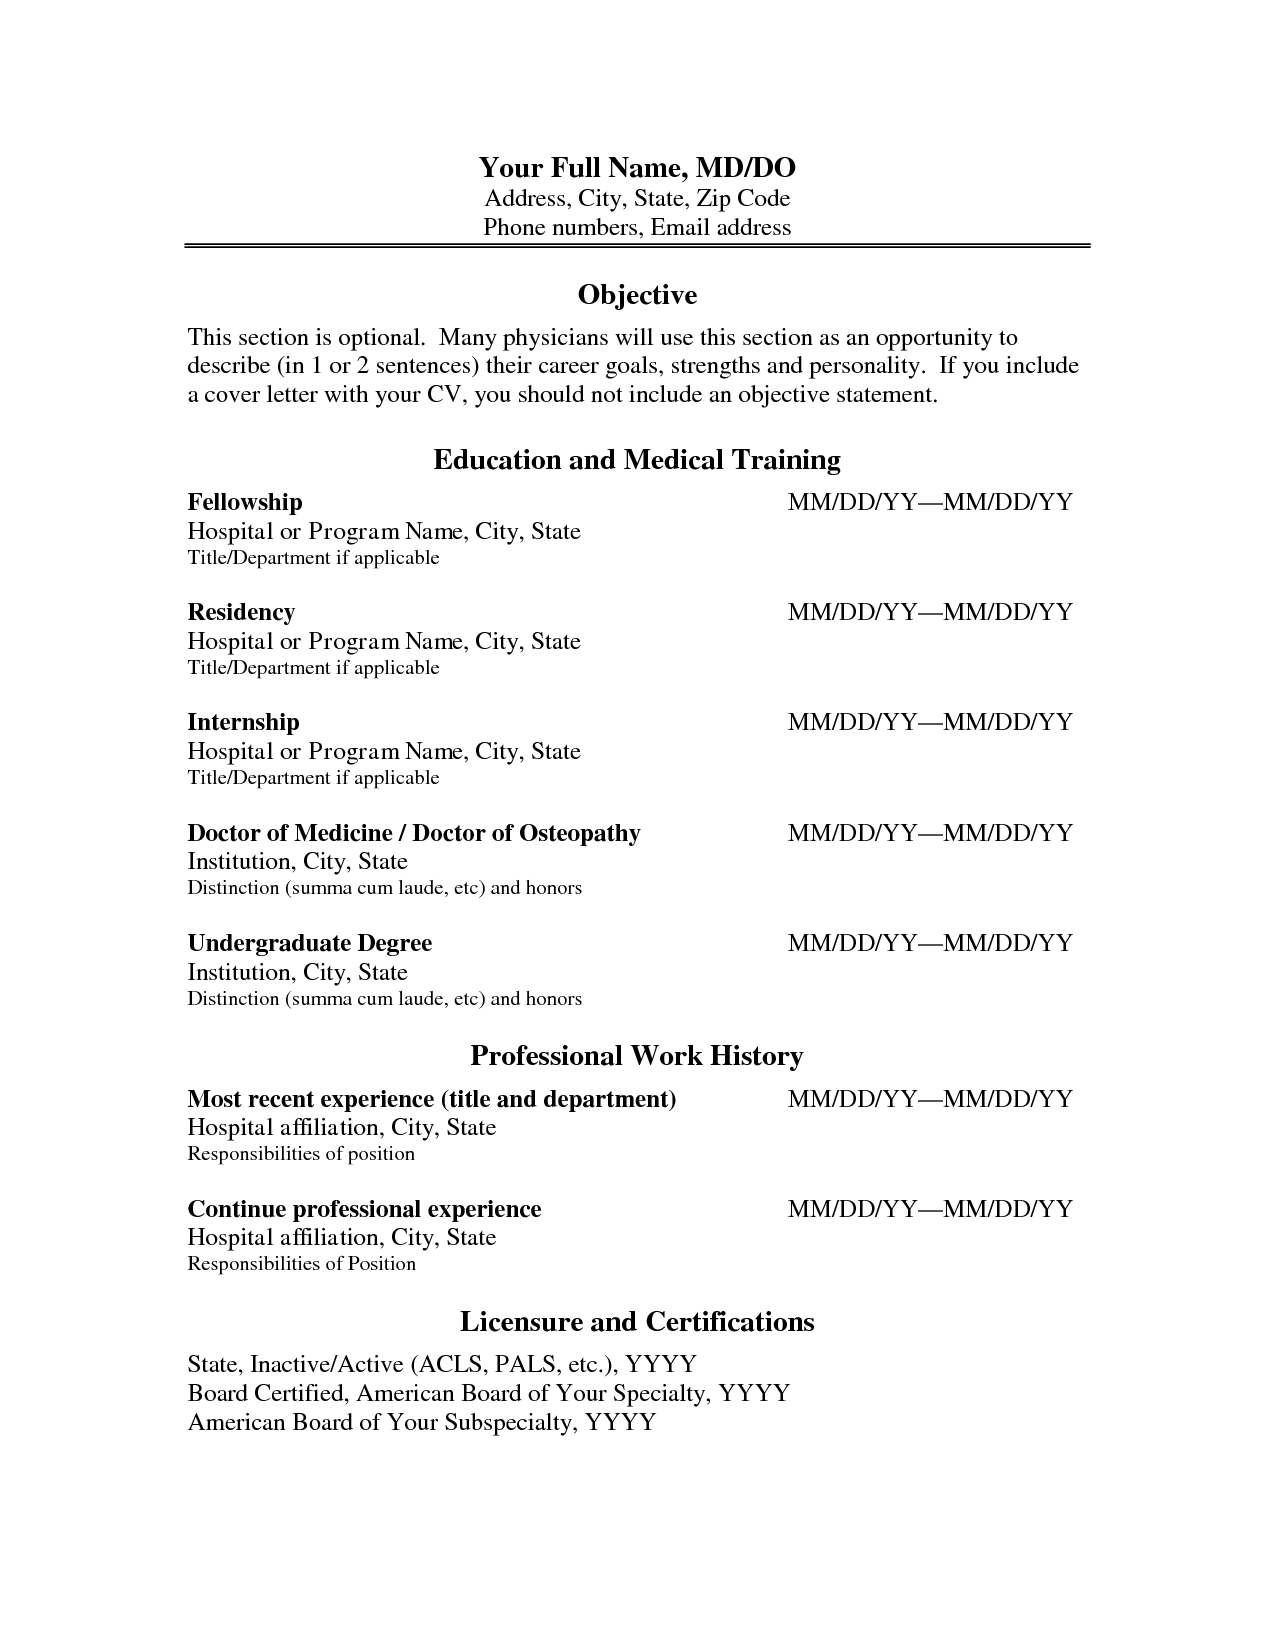 Resume Format Template Unique Cv Format Physician Physician Assistant Resume And Curriculum